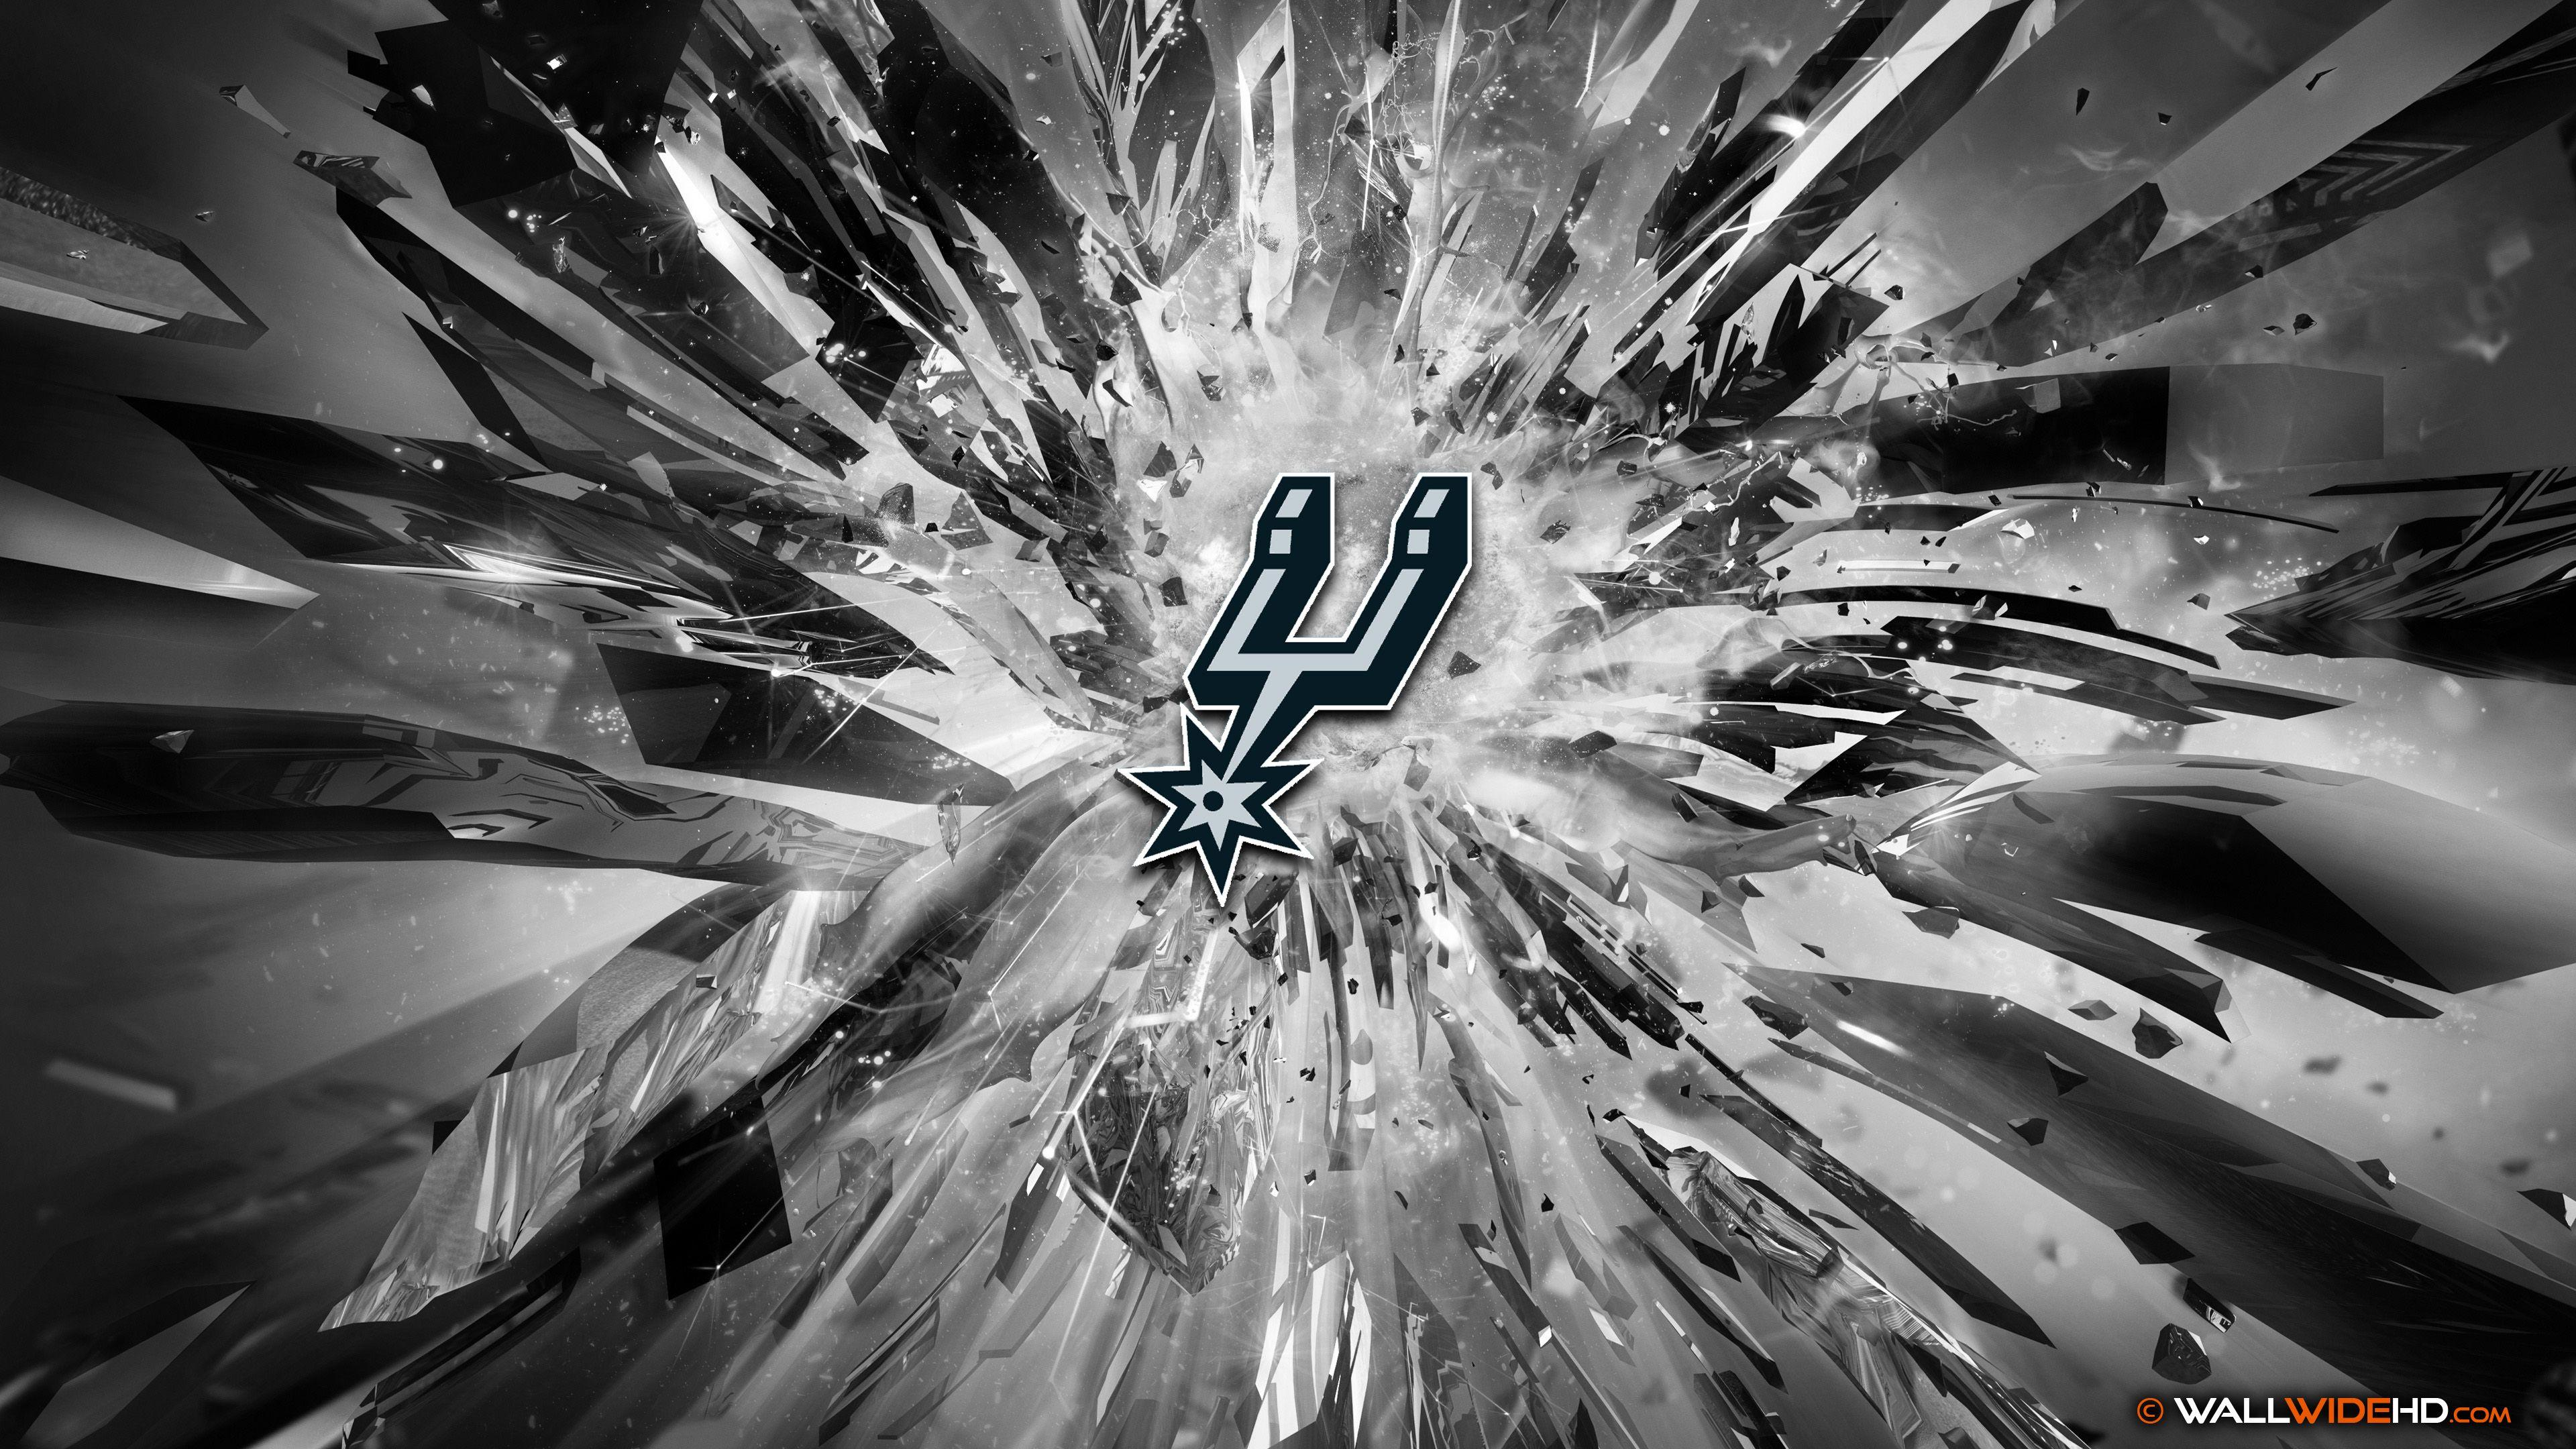 Spurs Wallpaper 2016 - WallpaperSafari